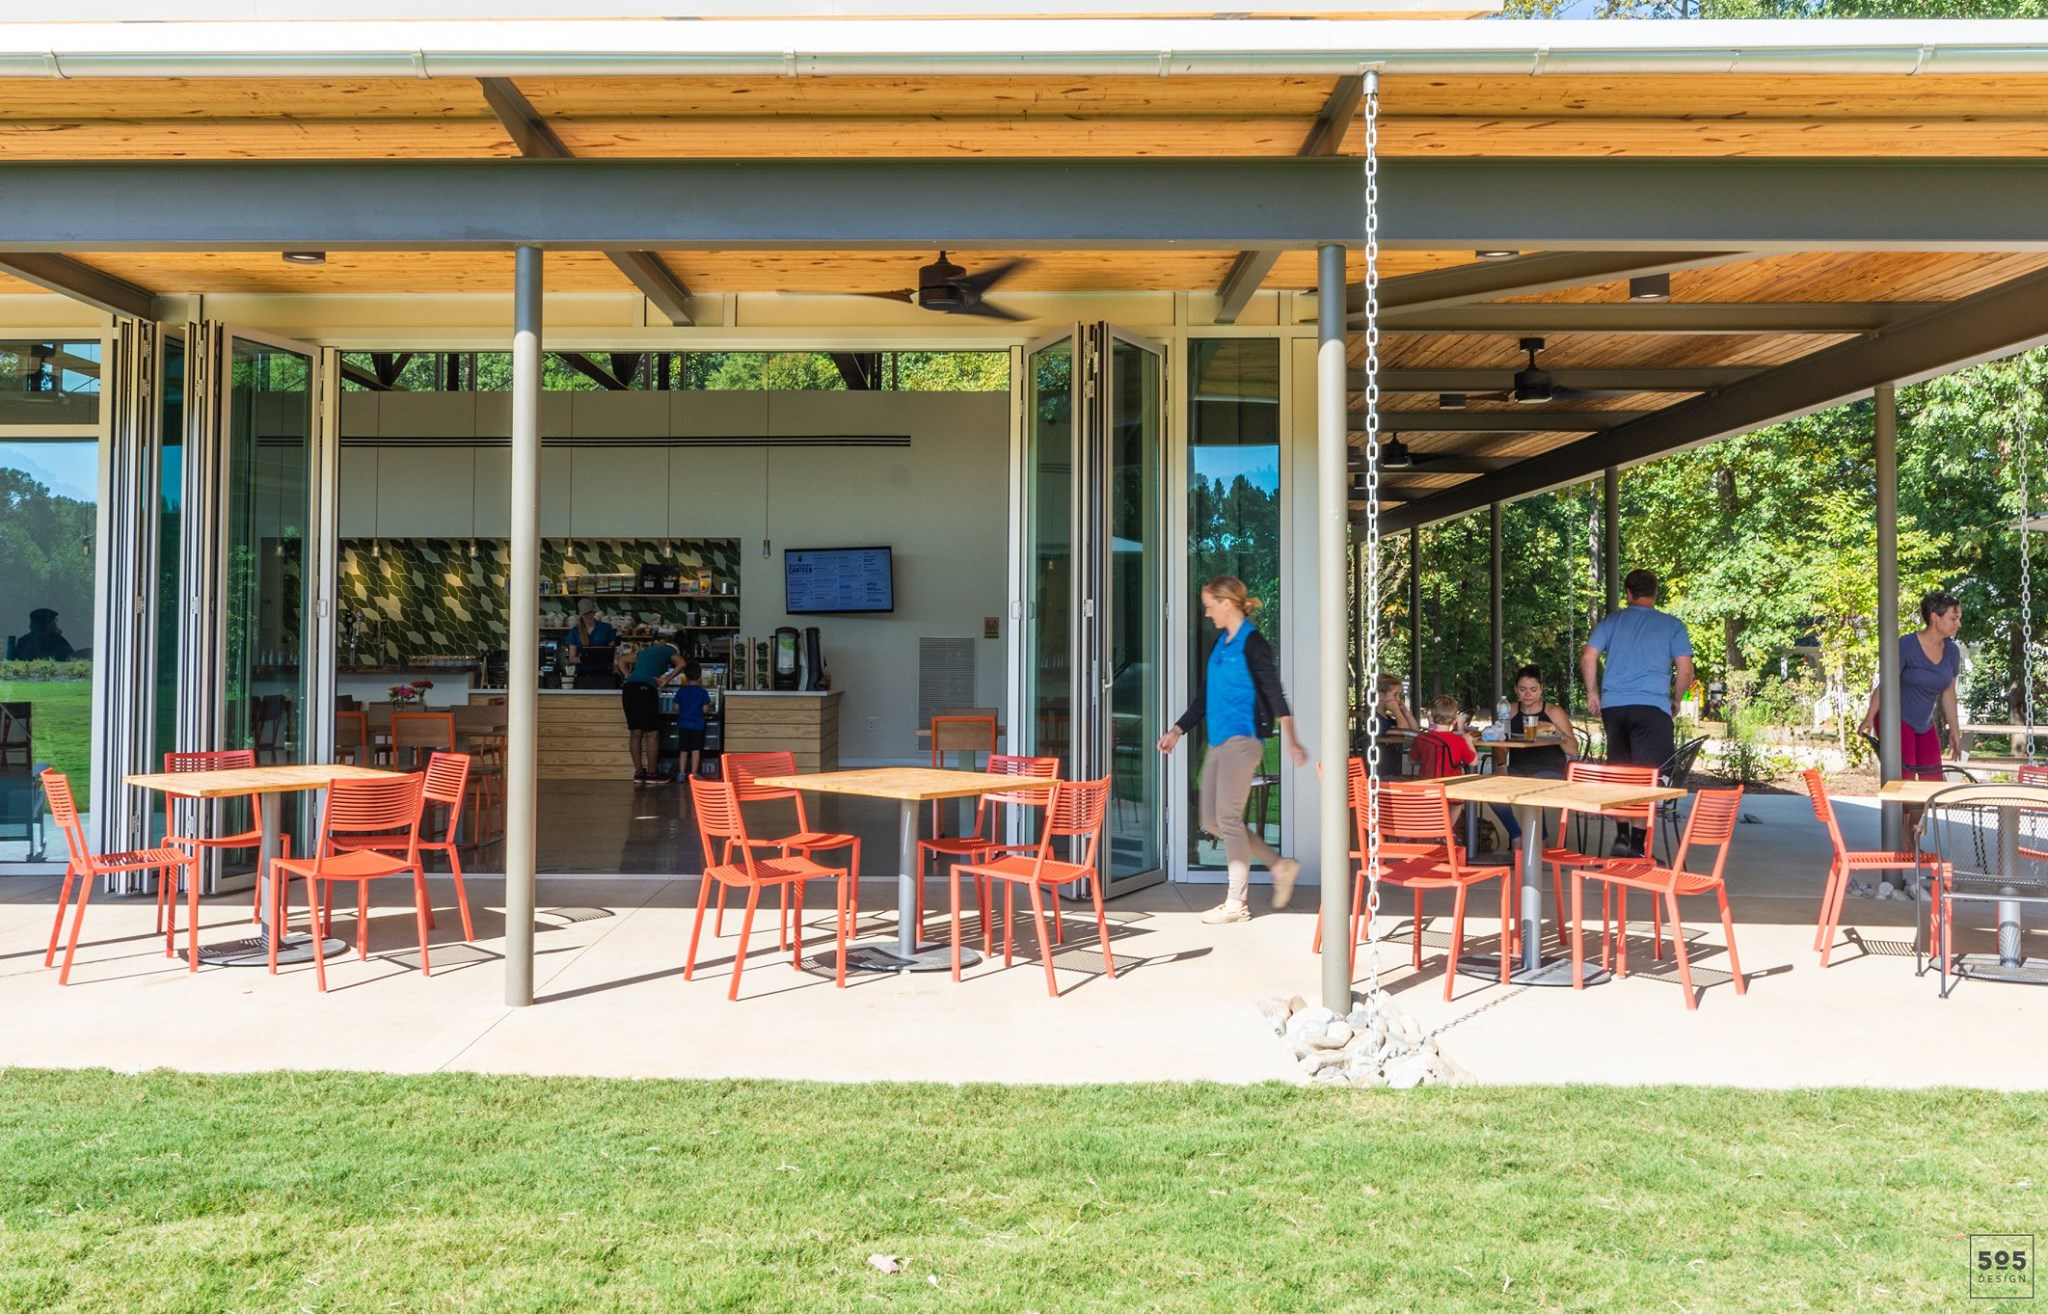 Greenway Canteen Cafe